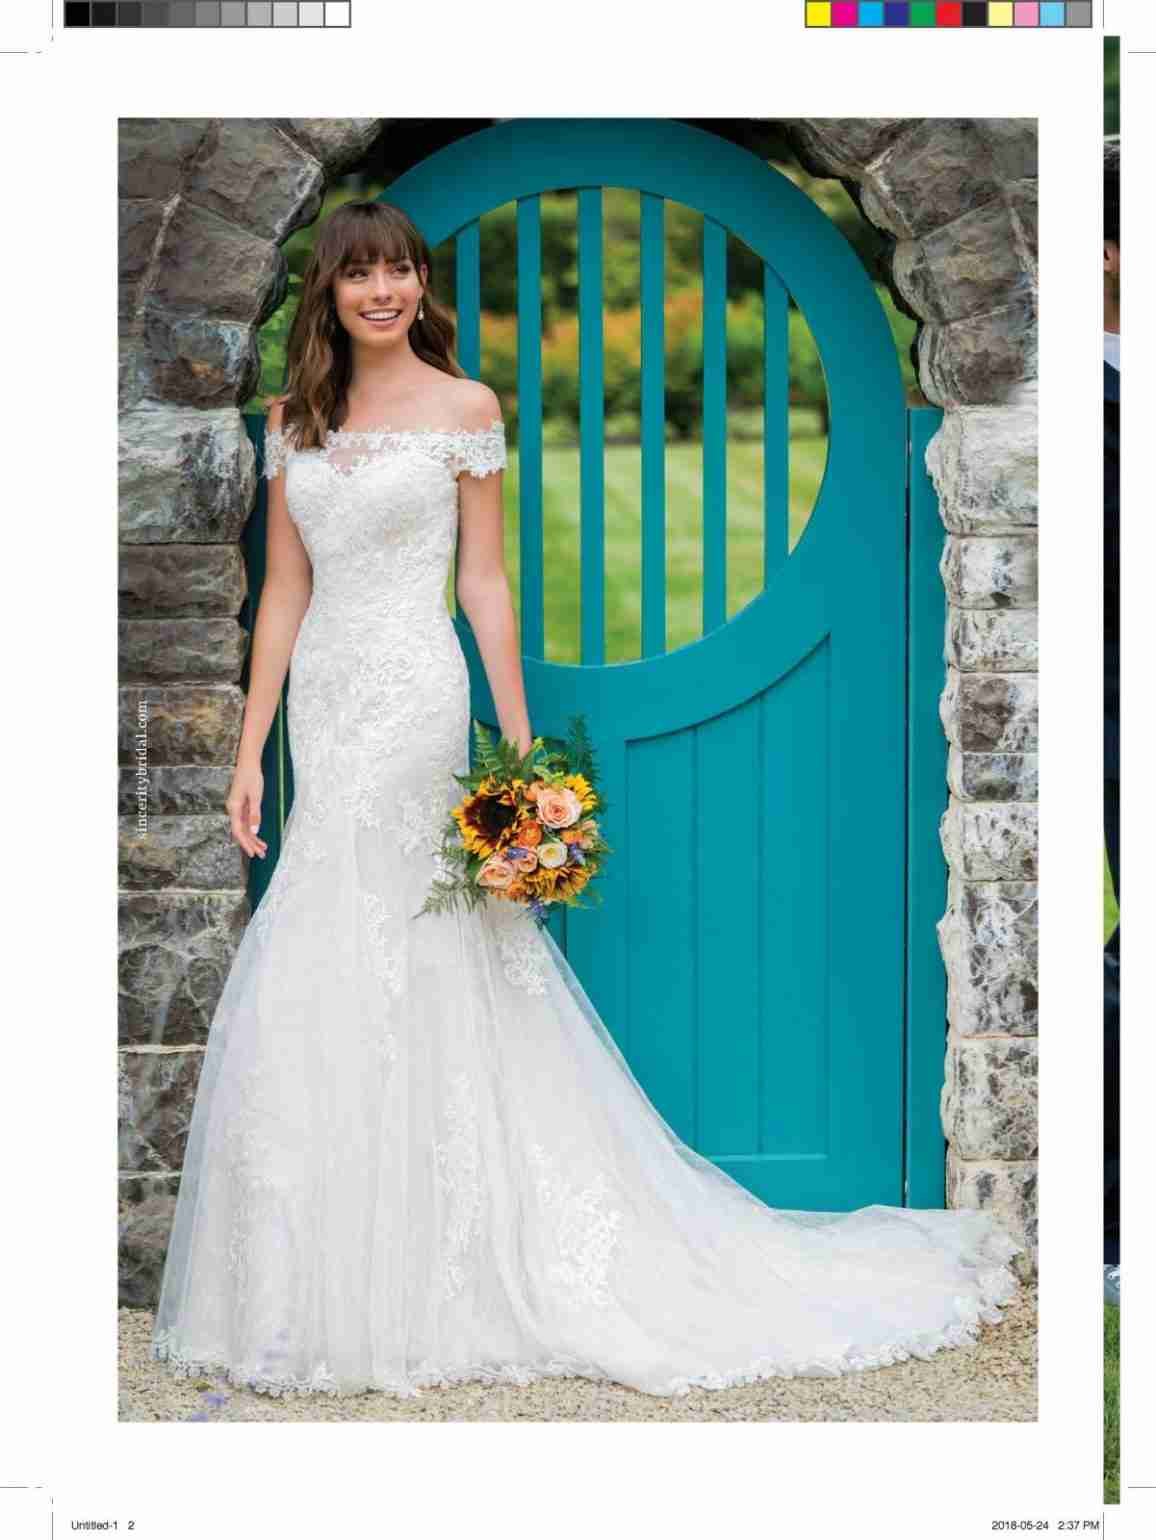 Bridal Gown Budgeting